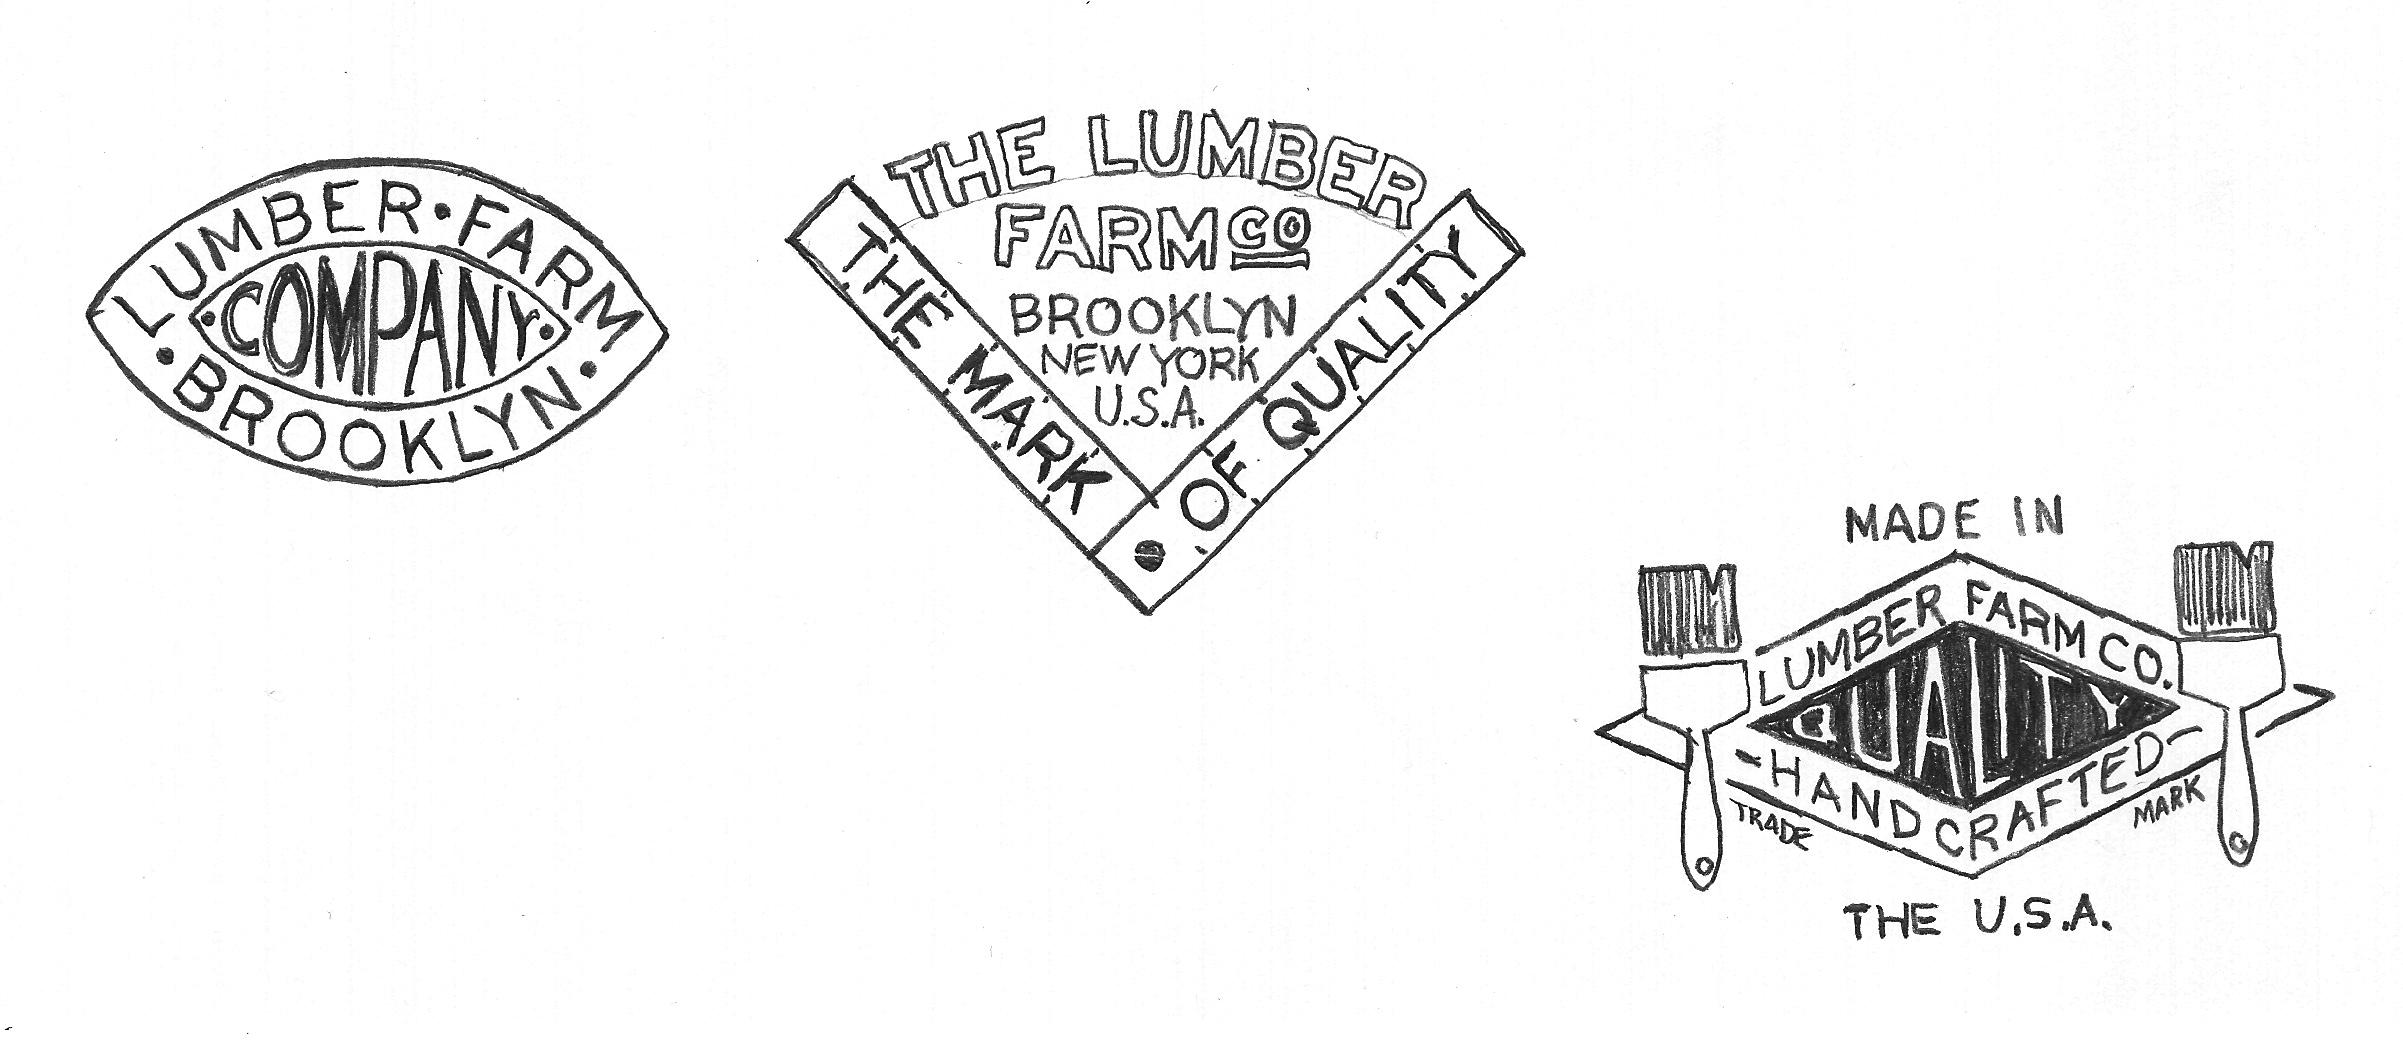 The Lumber Farm - image 1 - student project